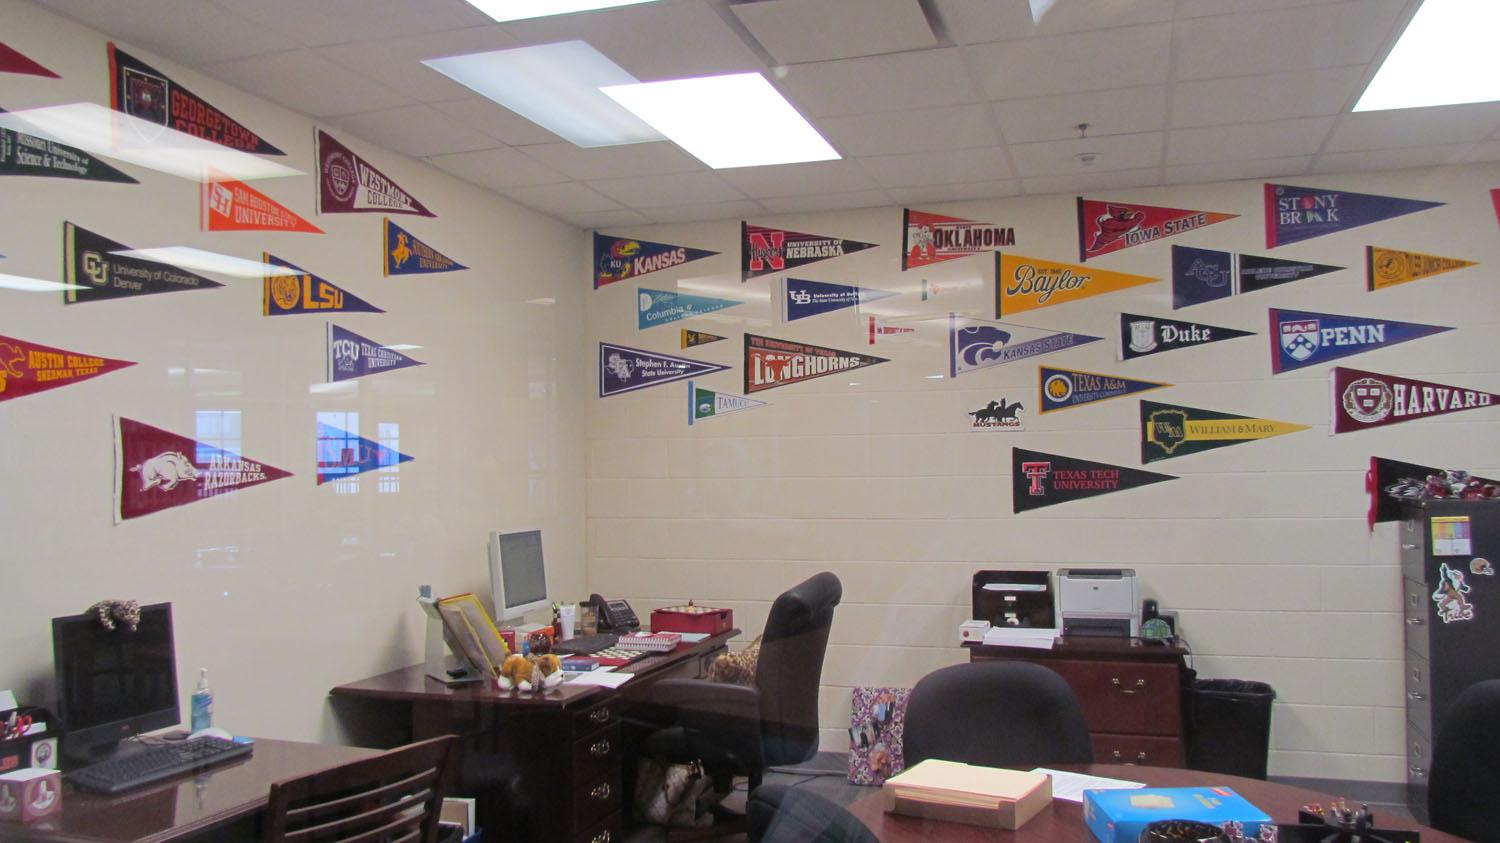 The college counselor's office is located in the library.